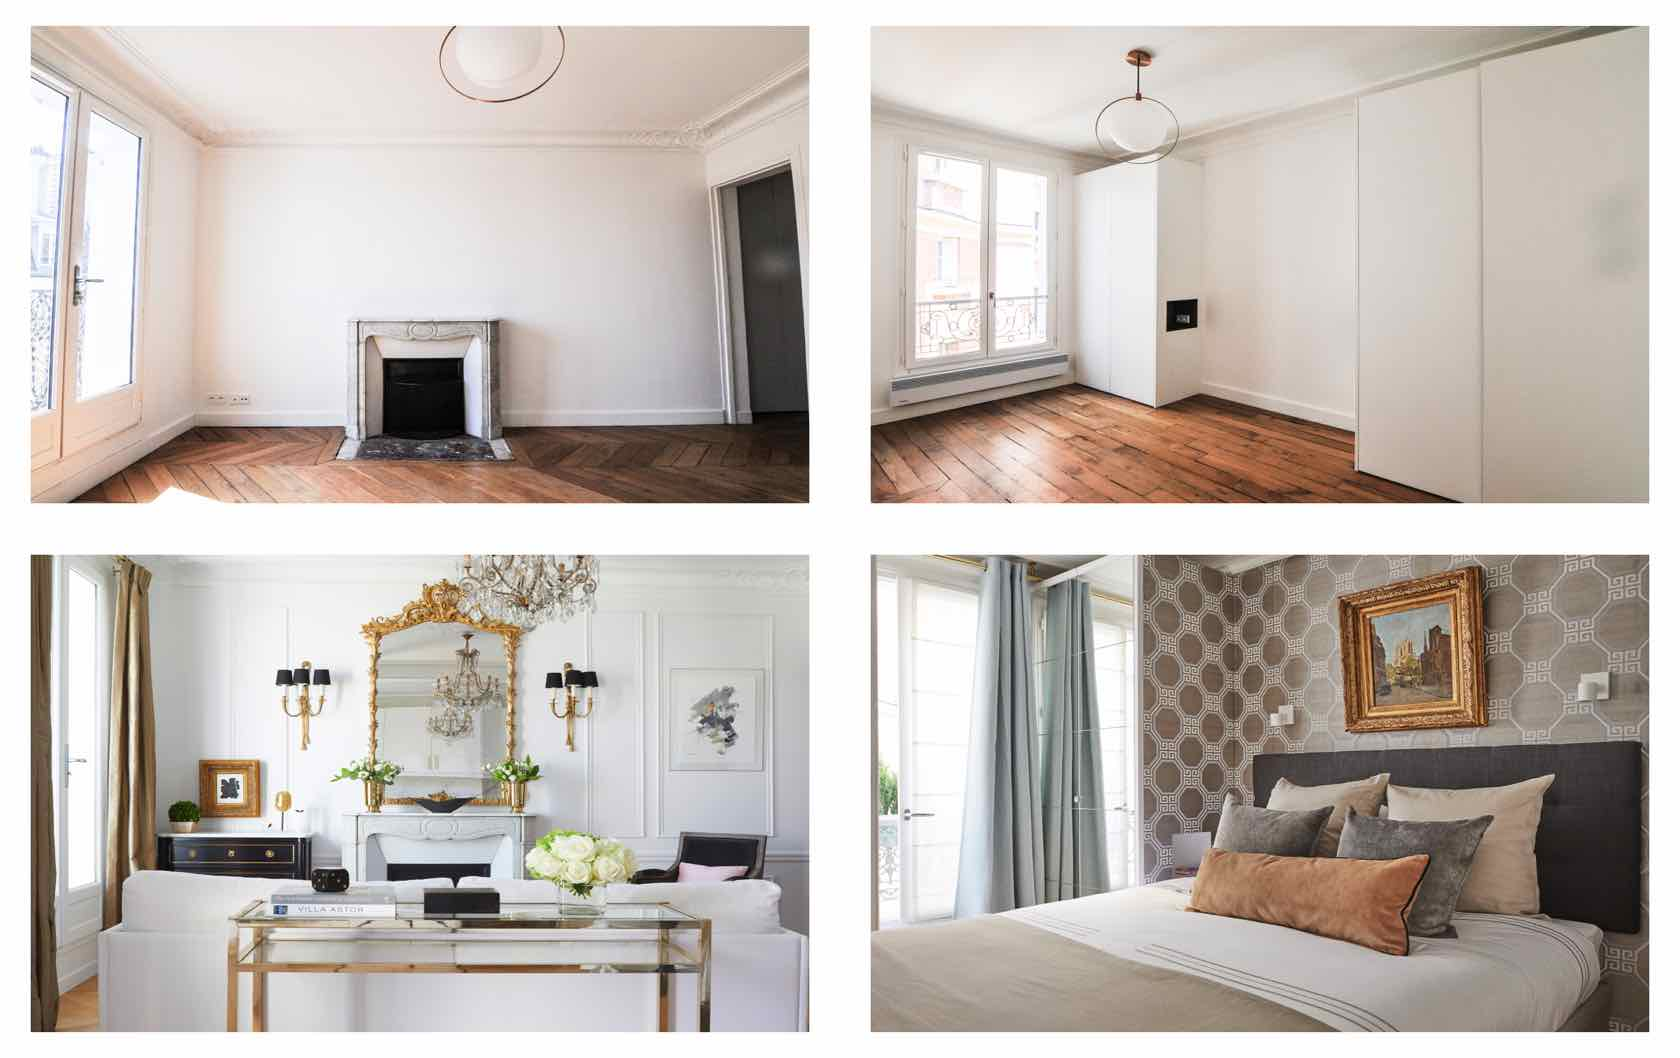 renovating a Paris apartment Before and after